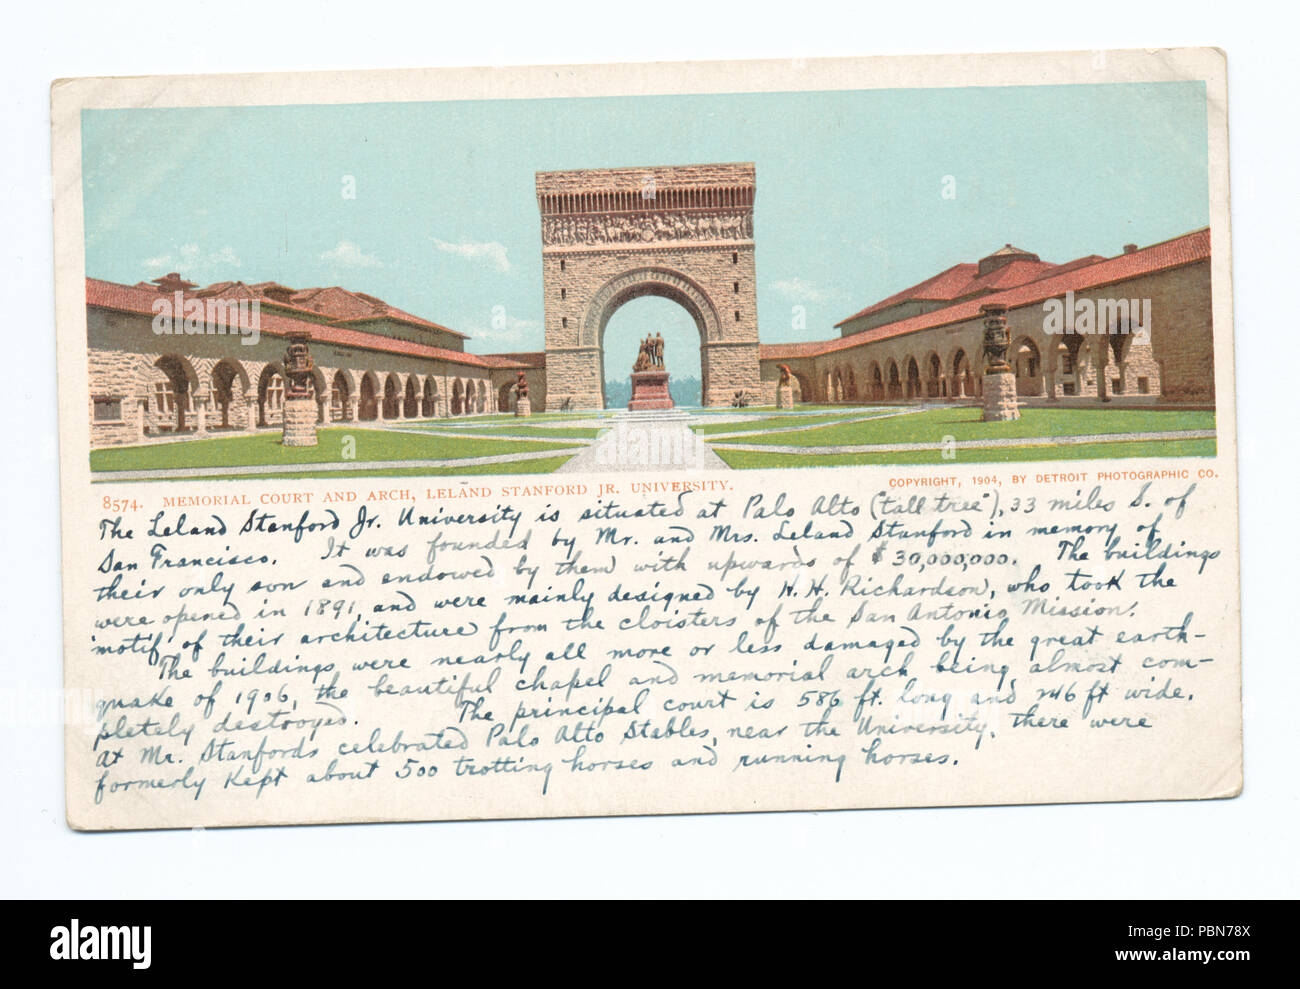 1014 Memorial Court and Arch, Leland Stanford Univ., Palo Alto, Calif (NYPL b12647398-67856) - Stock Image